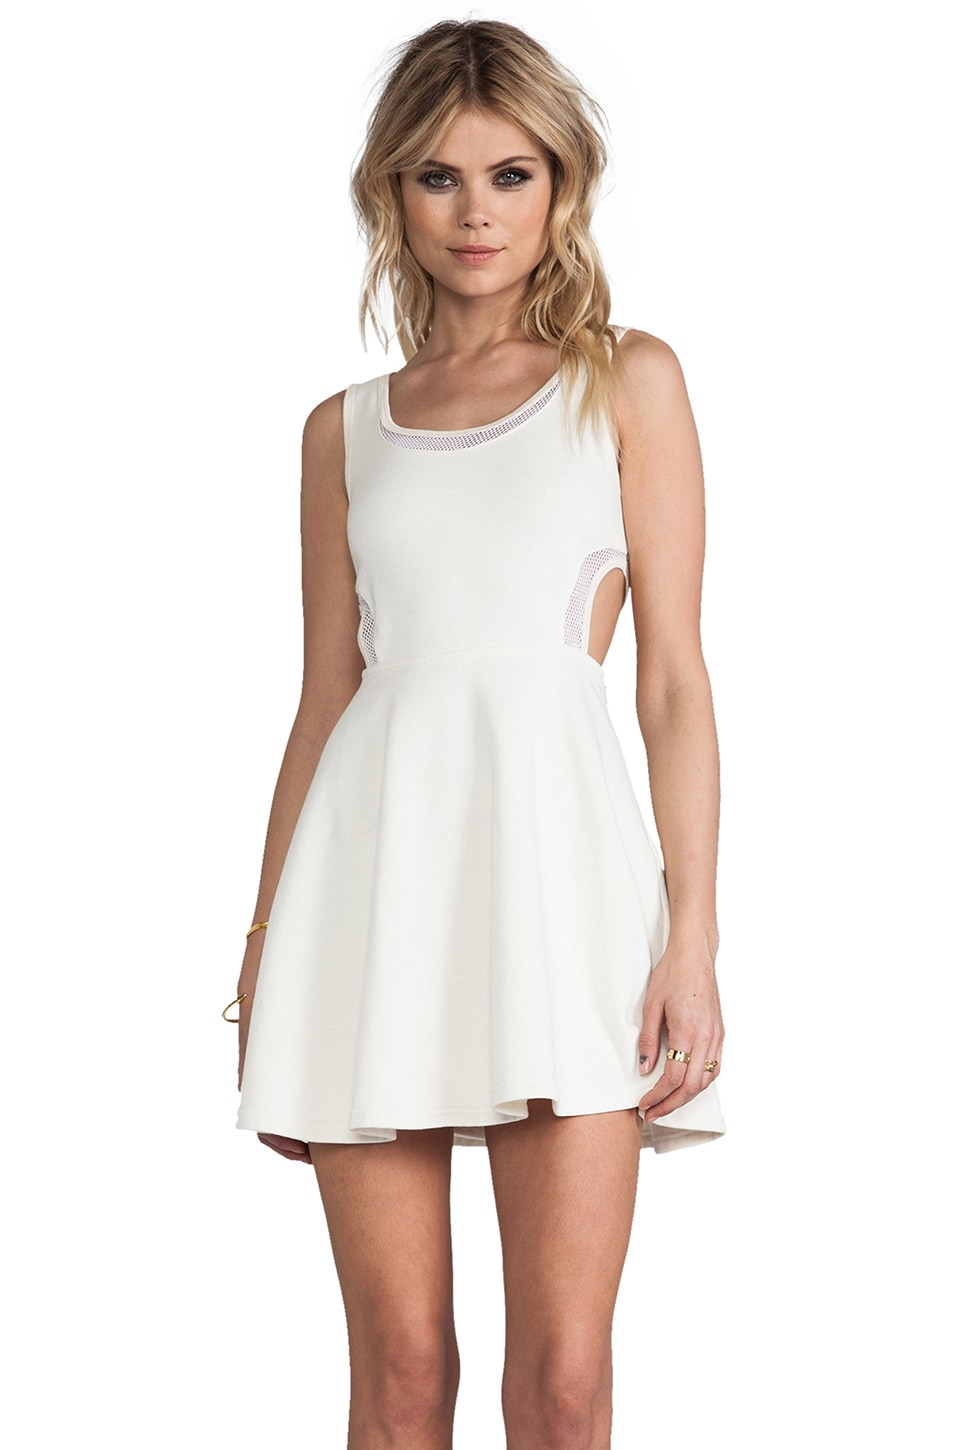 Pencey Standard French Terry Fencing Dress in White